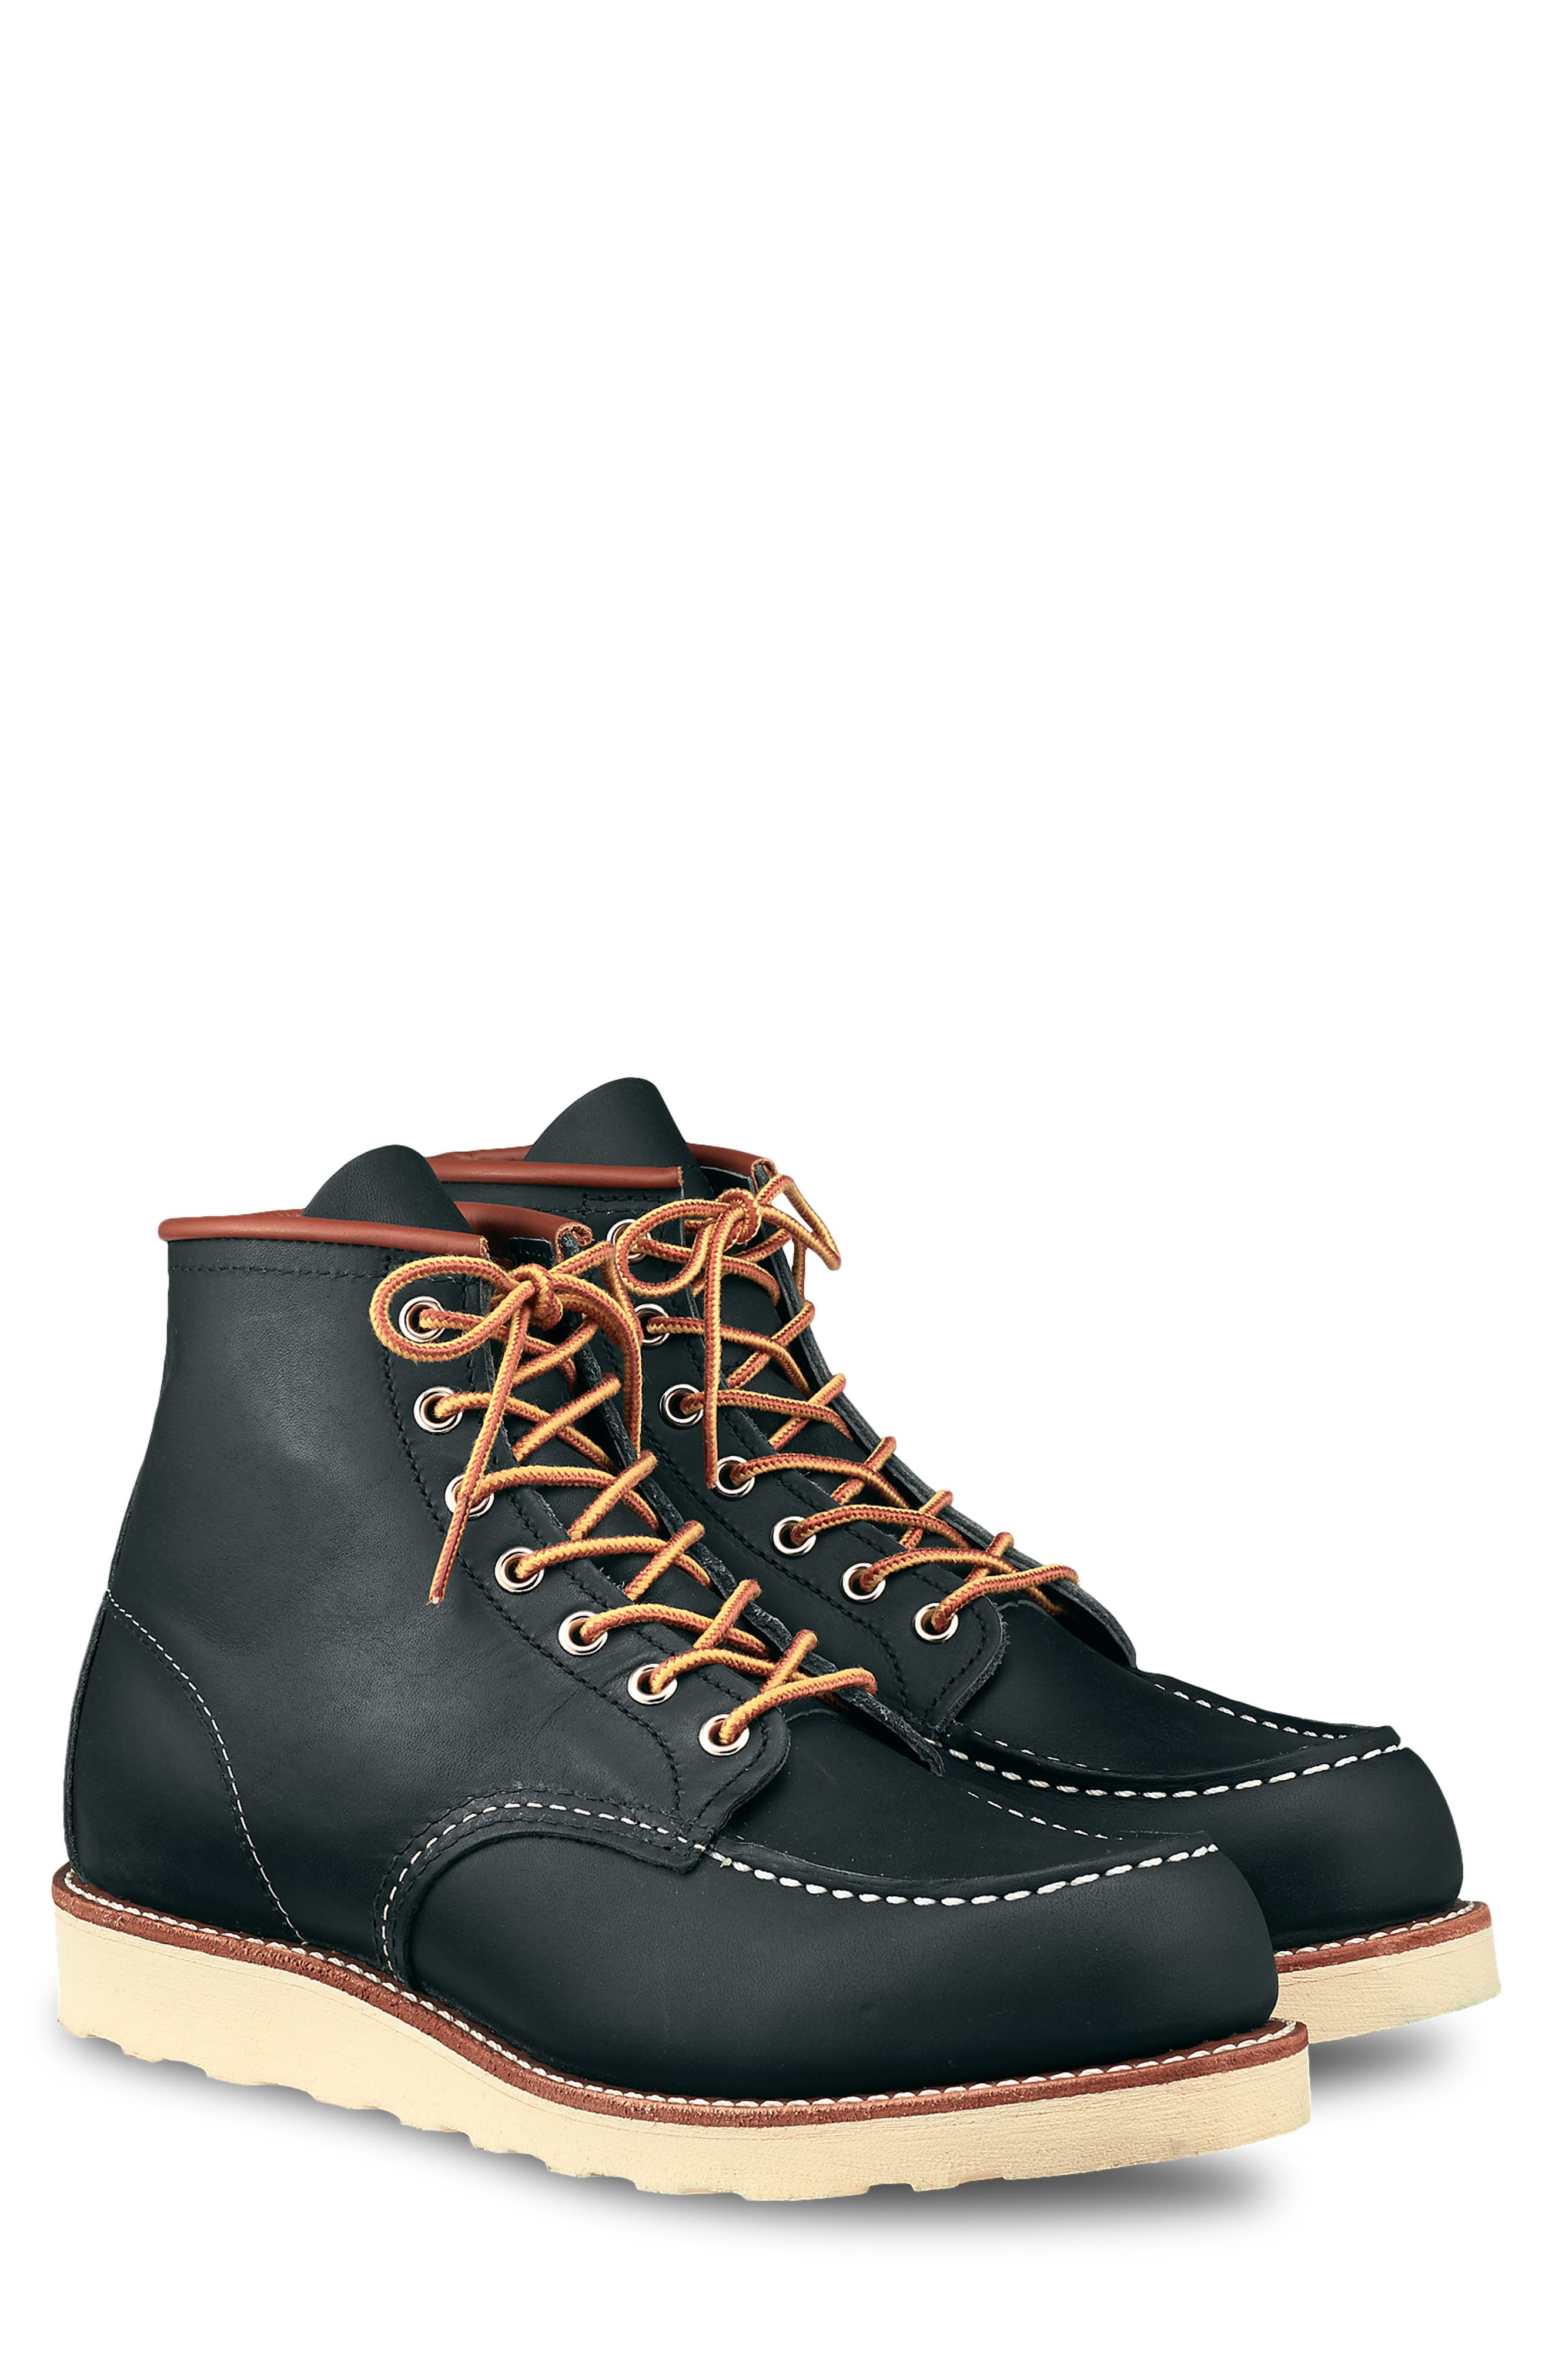 Red Wing 6 Inch Moc Toe Boot - Blue